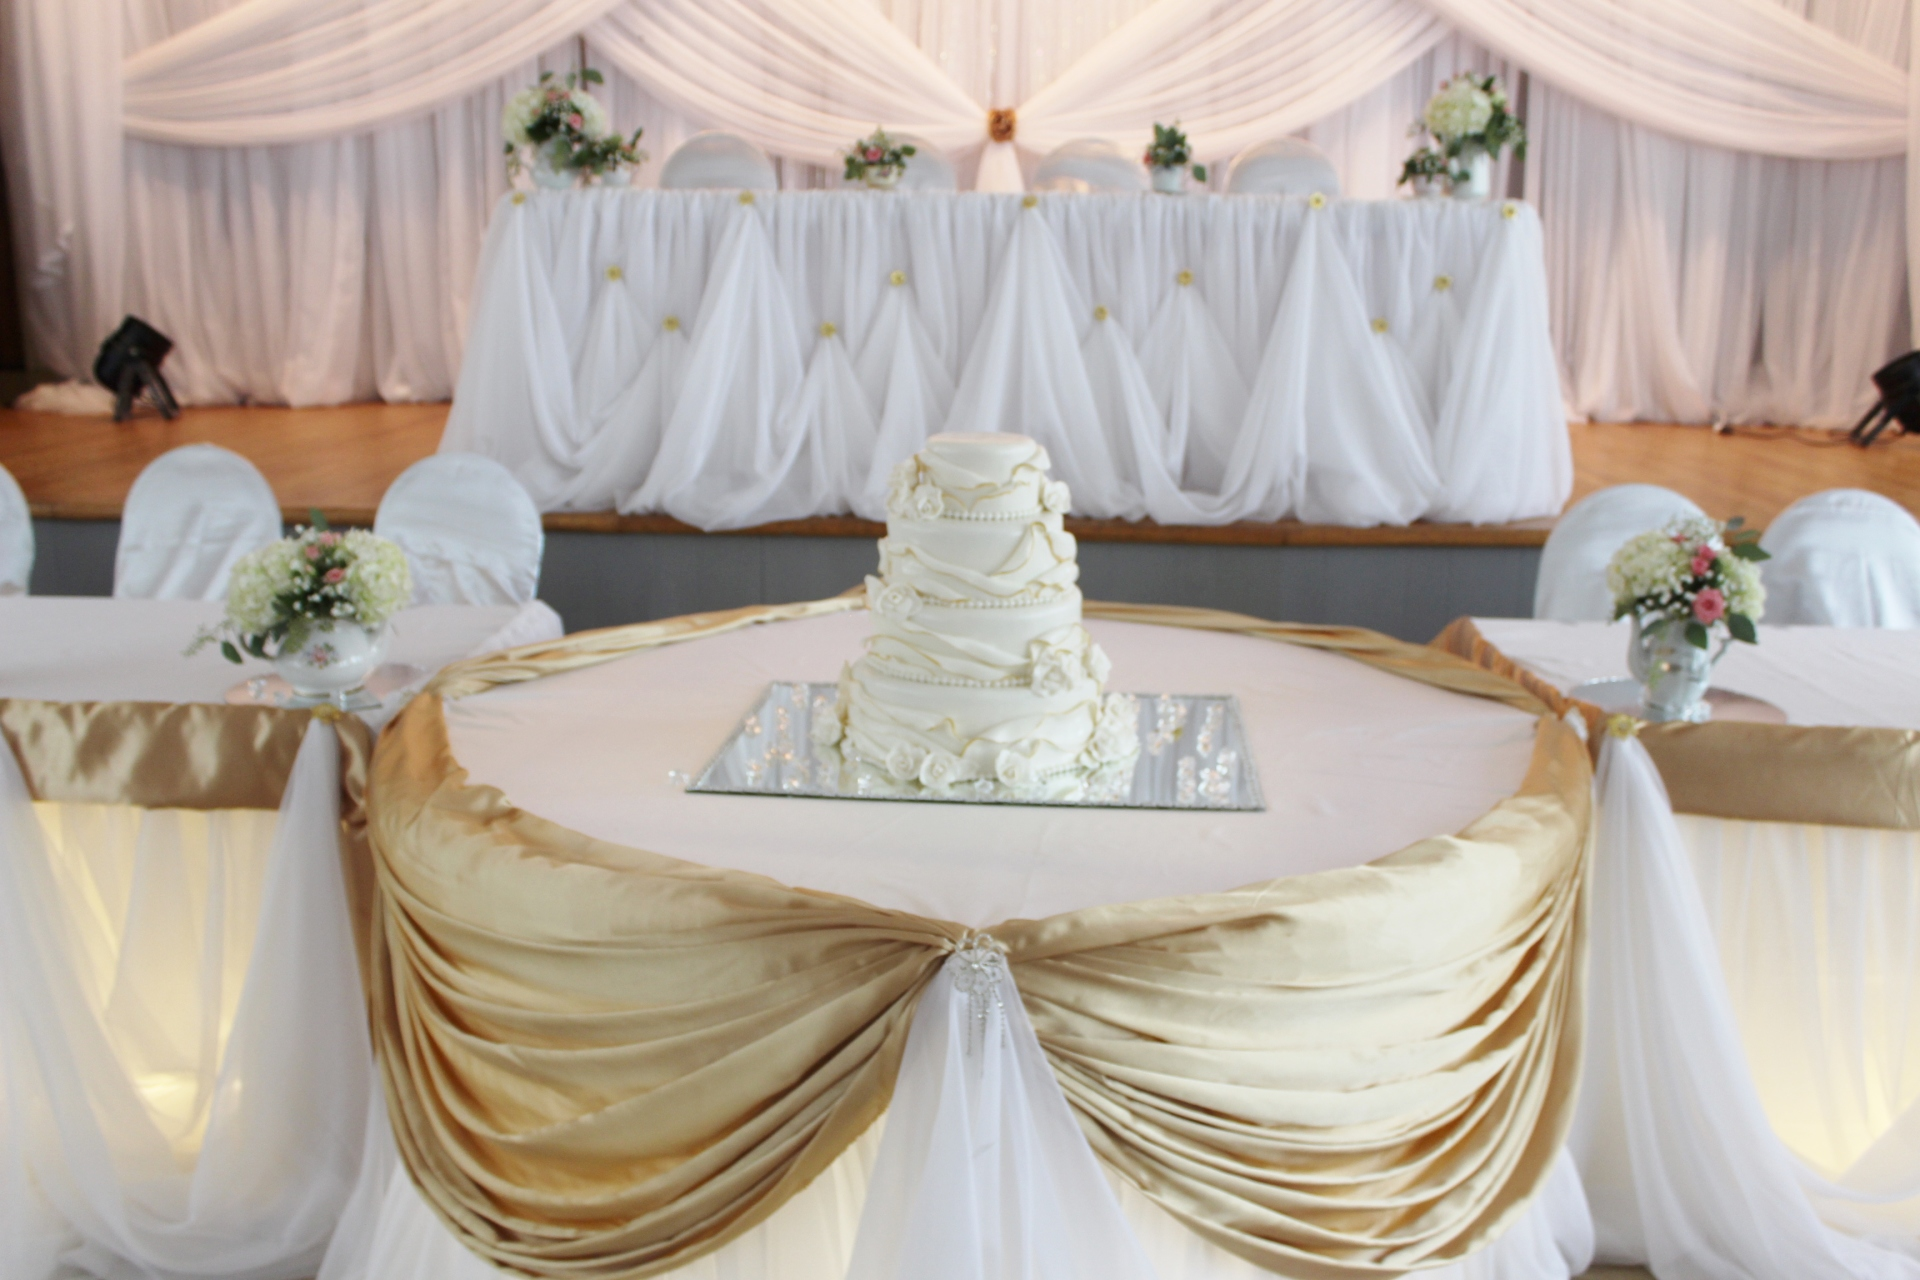 White and gold ruffled wedding